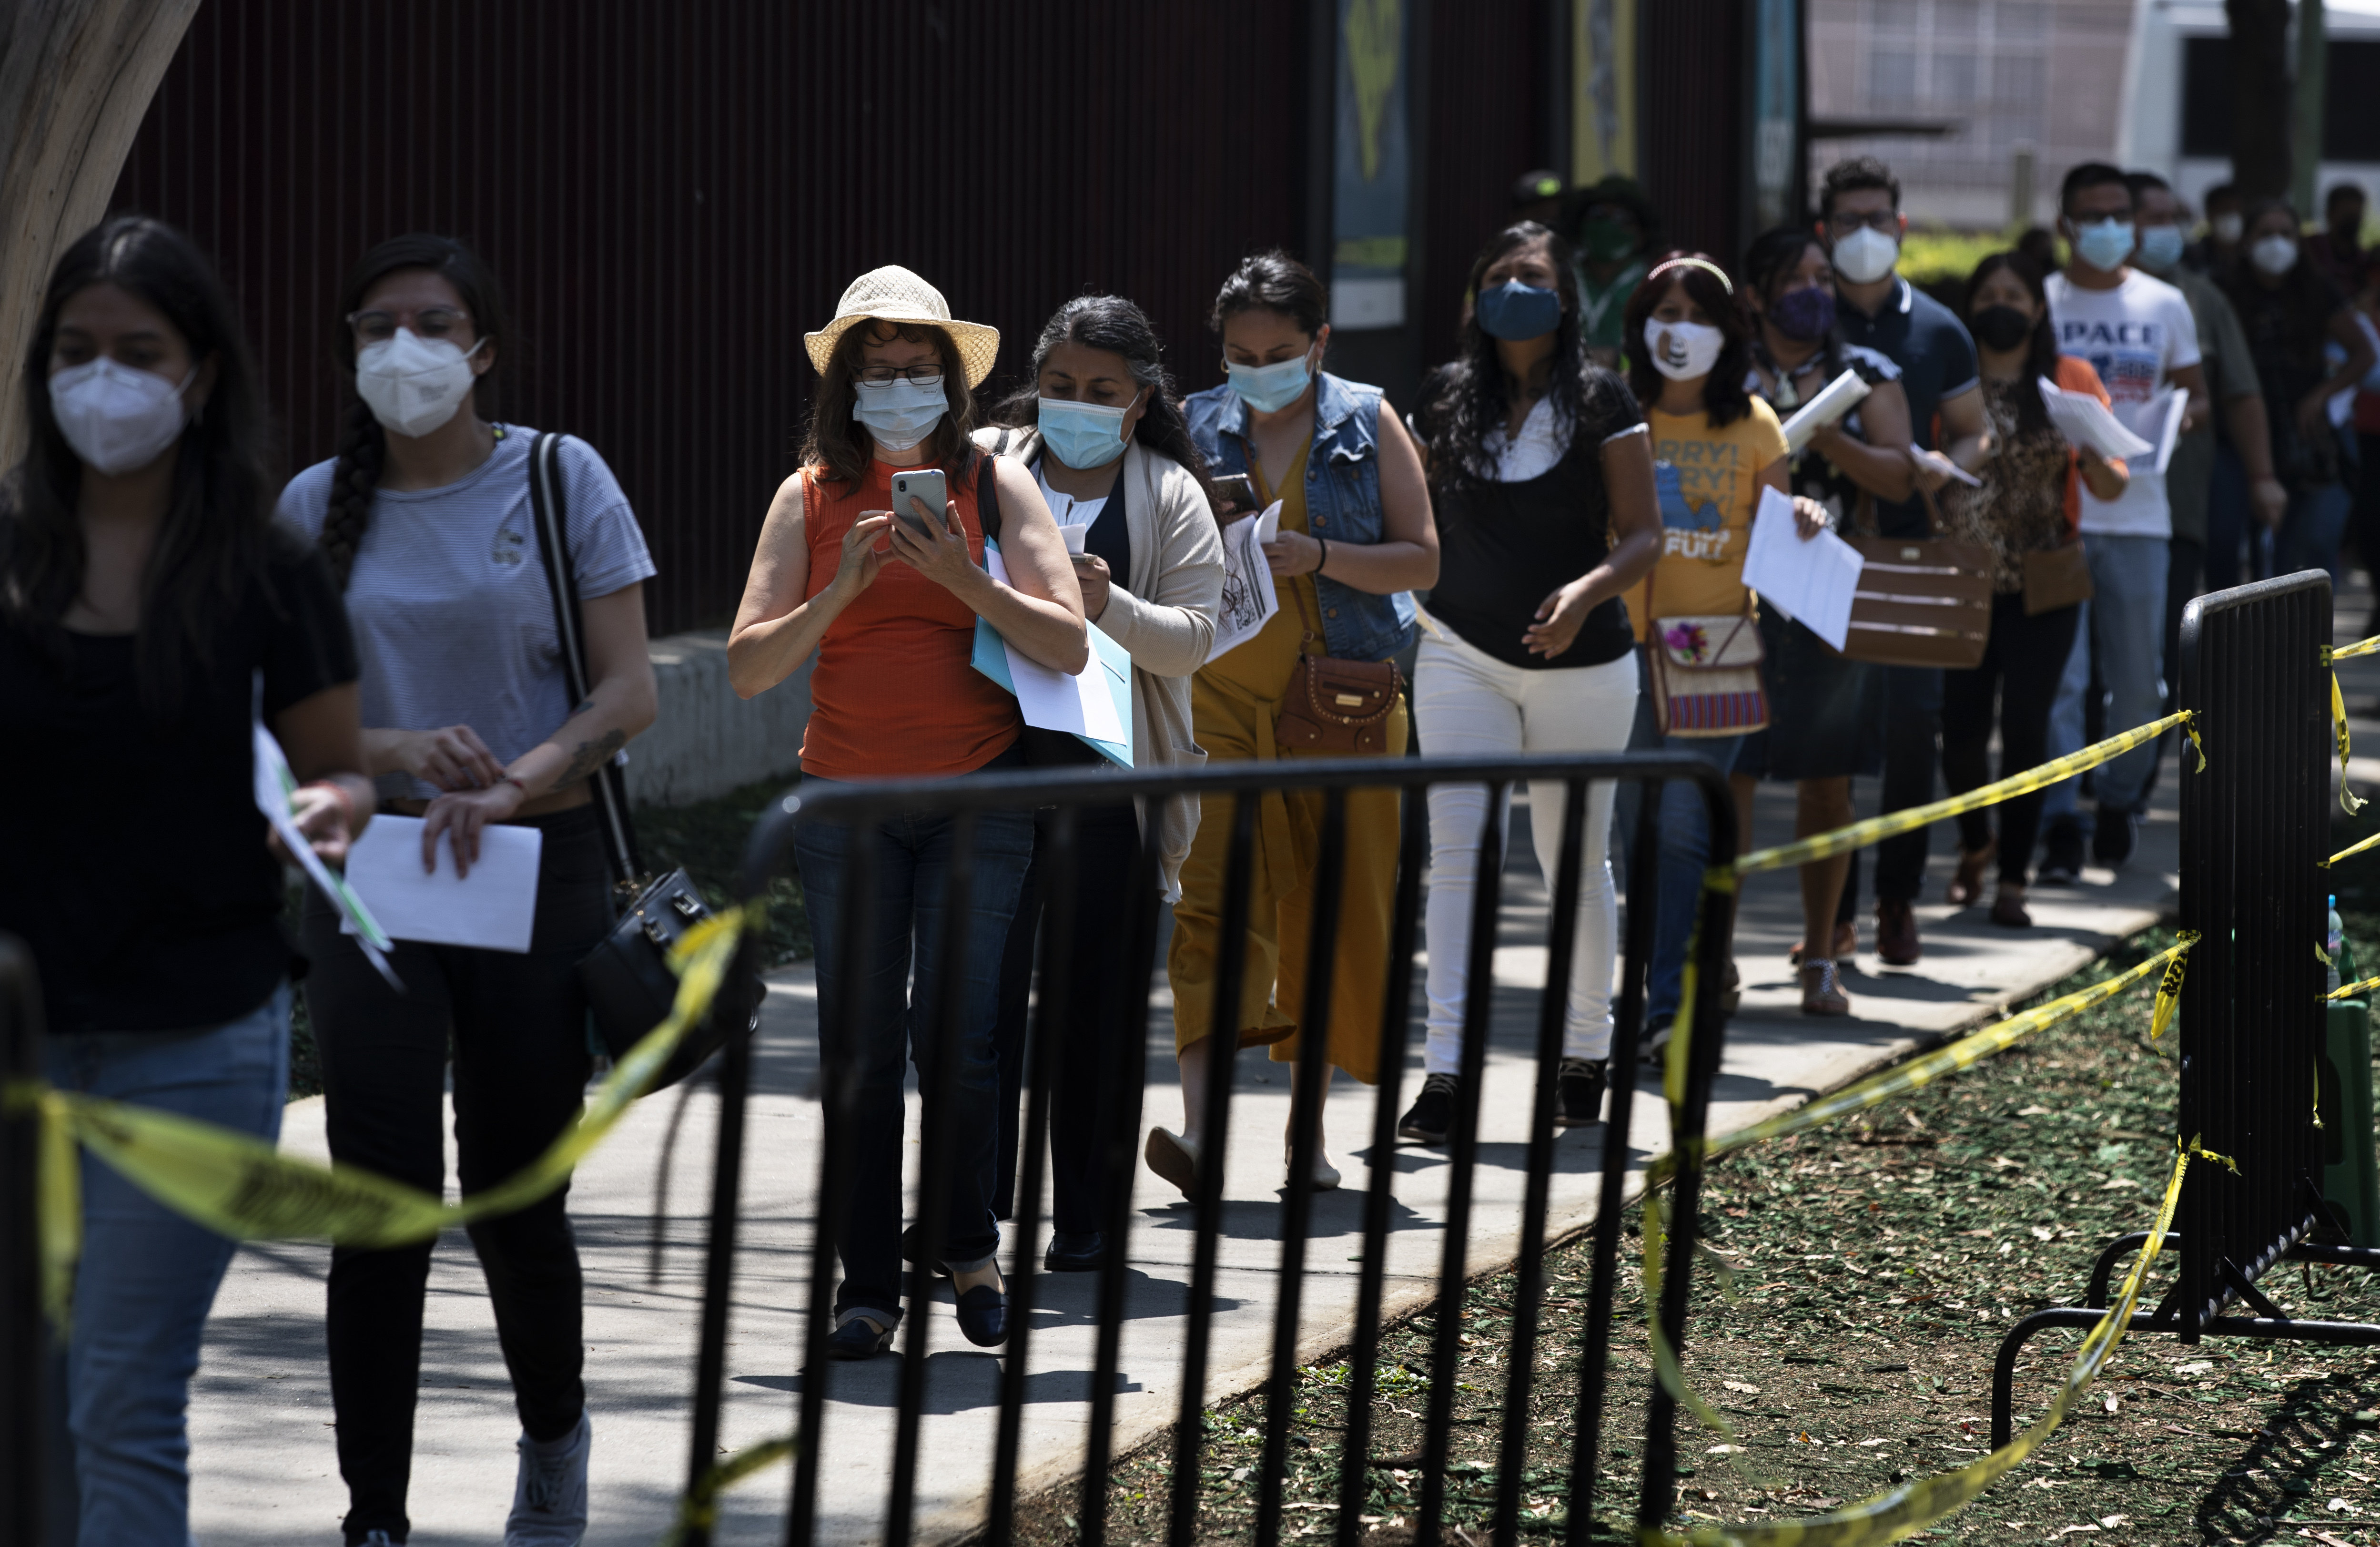 Mexico says a quarter of its population has been infected with COVID-19